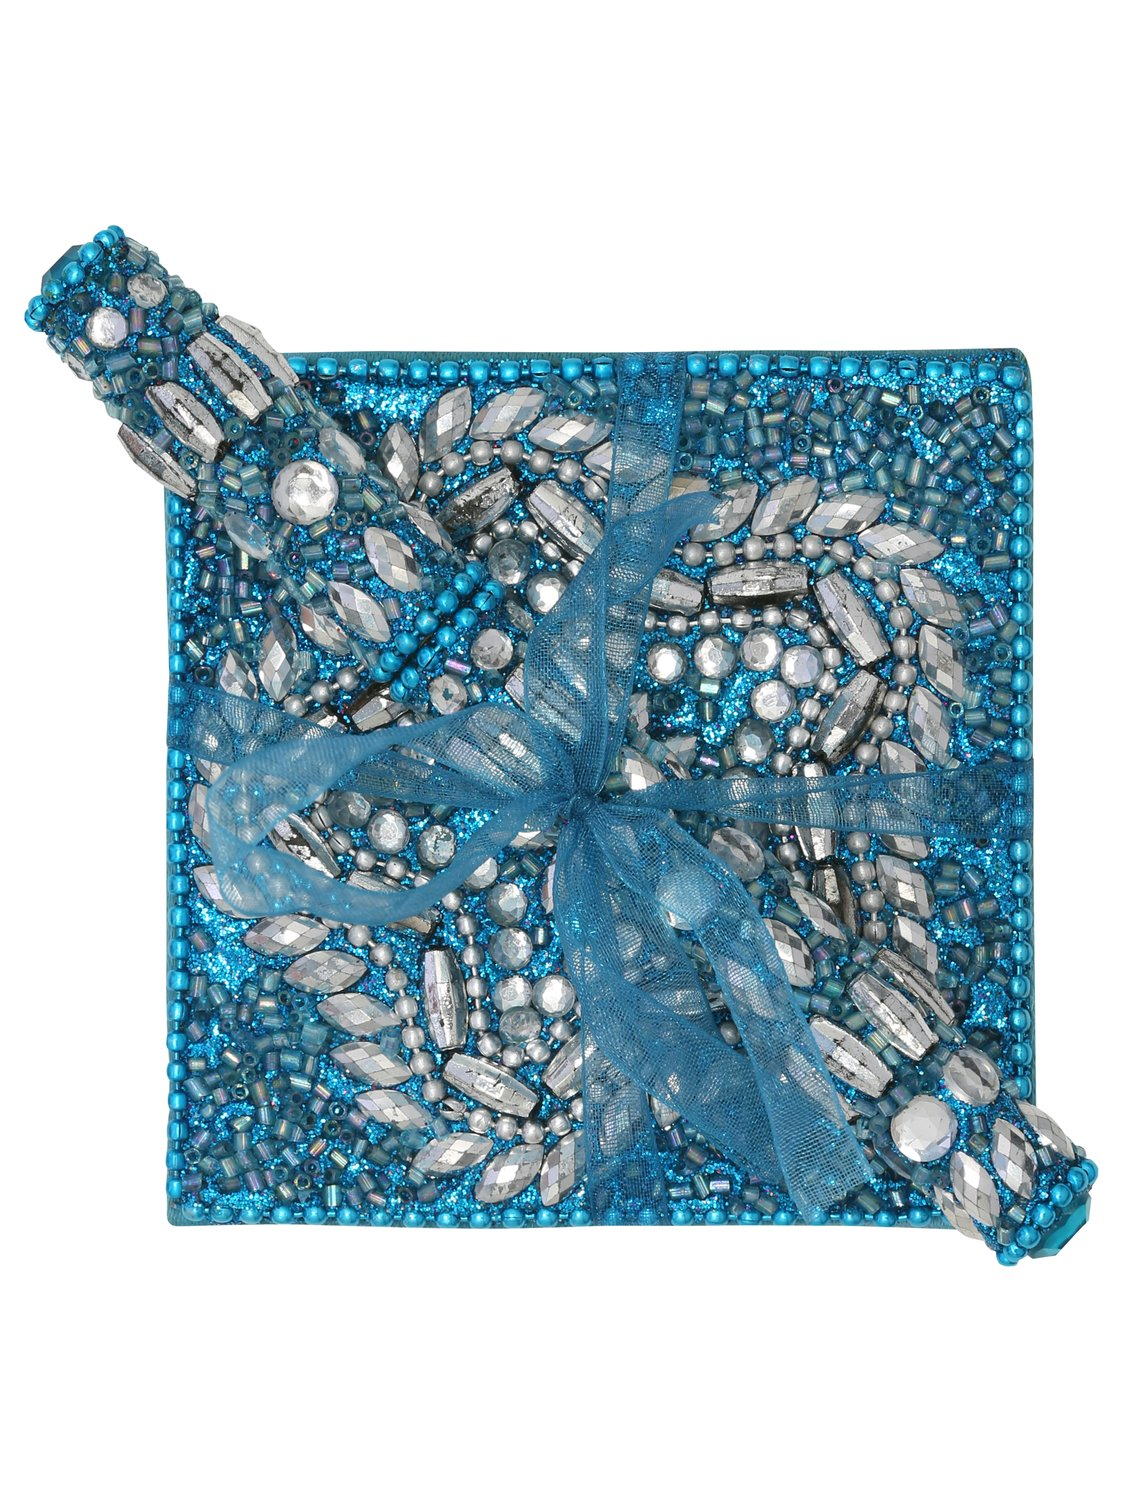 Bead and mirror detail Embellished shellac design Notebook and matching pen ribbon tied gift set - Blue